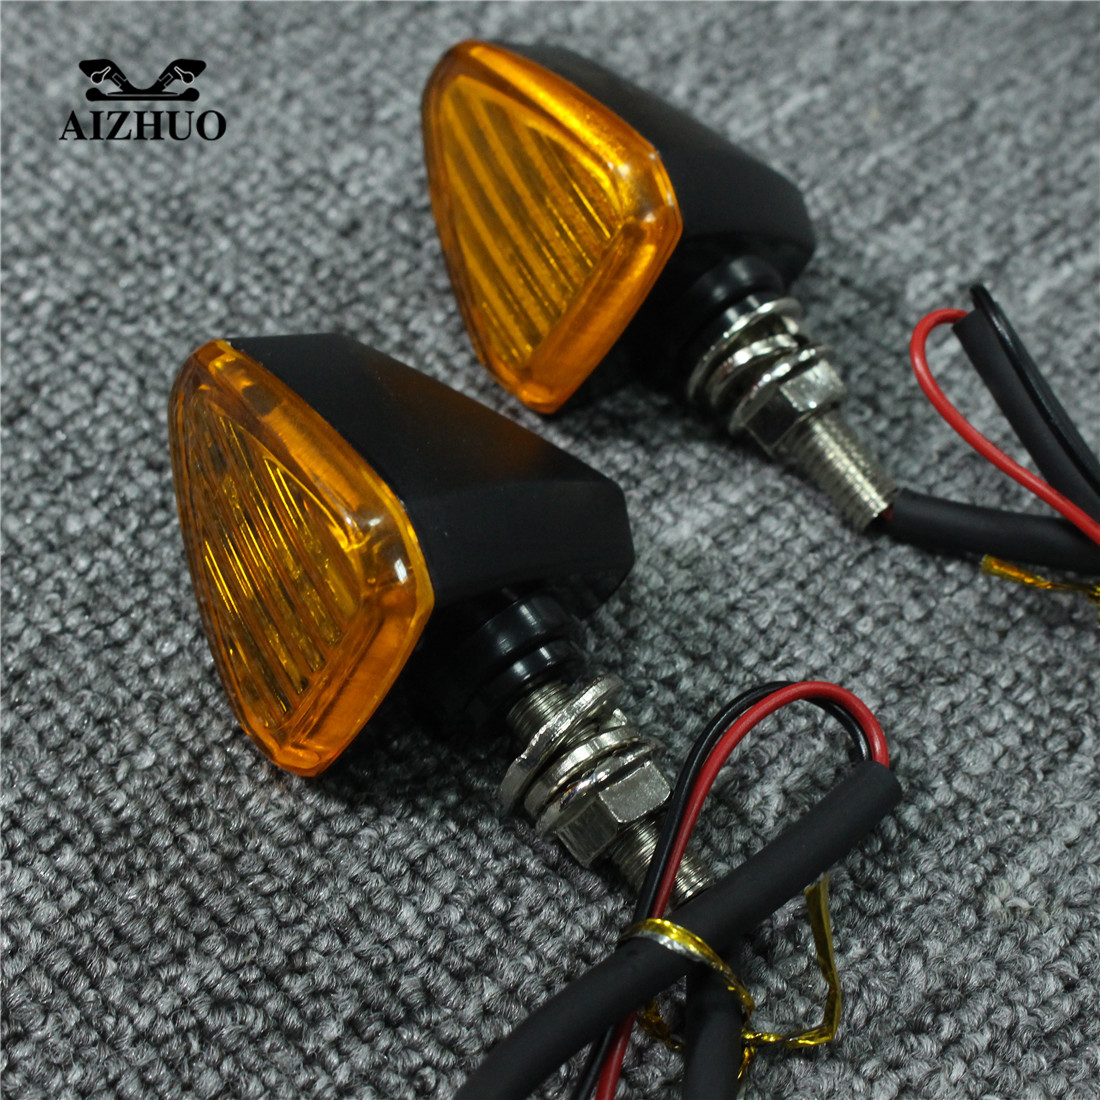 Motorcycle Accessories <font><b>LED</b></font> Tail Turn Signal Flashing Light for <font><b>BMW</b></font> R NINE T R1200GS ADVENTURE LC R1200RS <font><b>R1200R</b></font> S1000R R1200GS image